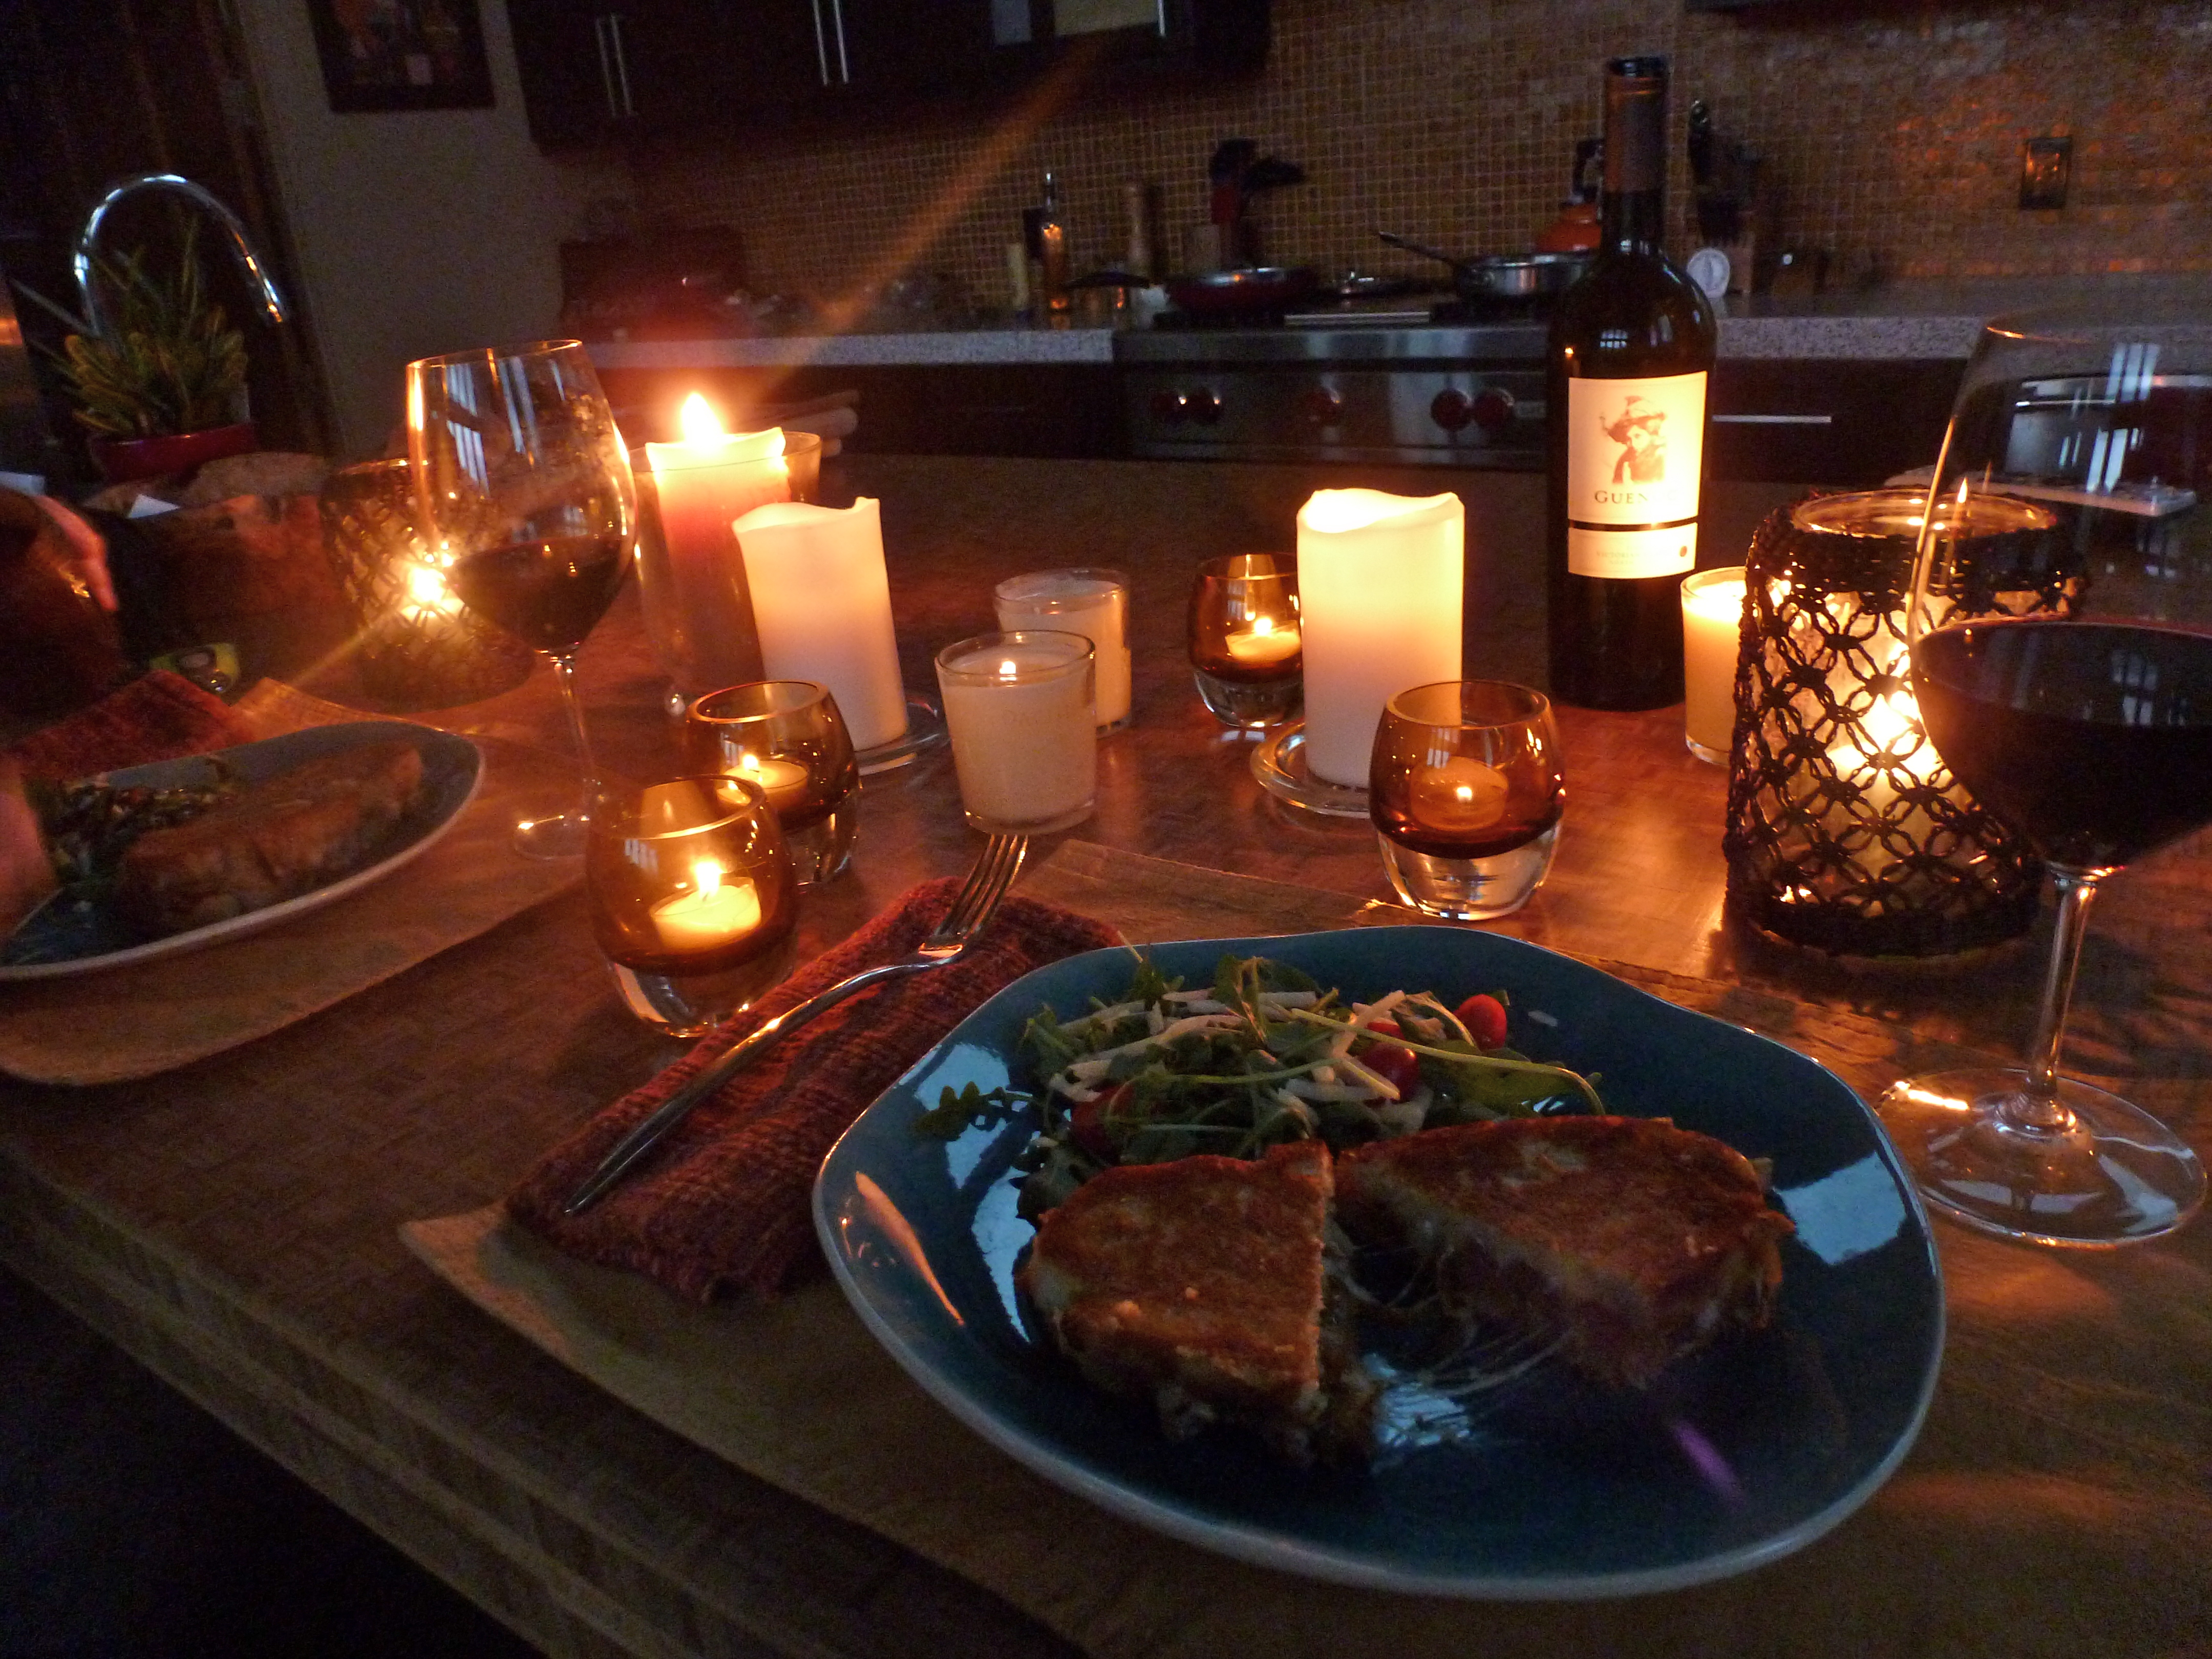 Candle light dinner table for two - Image